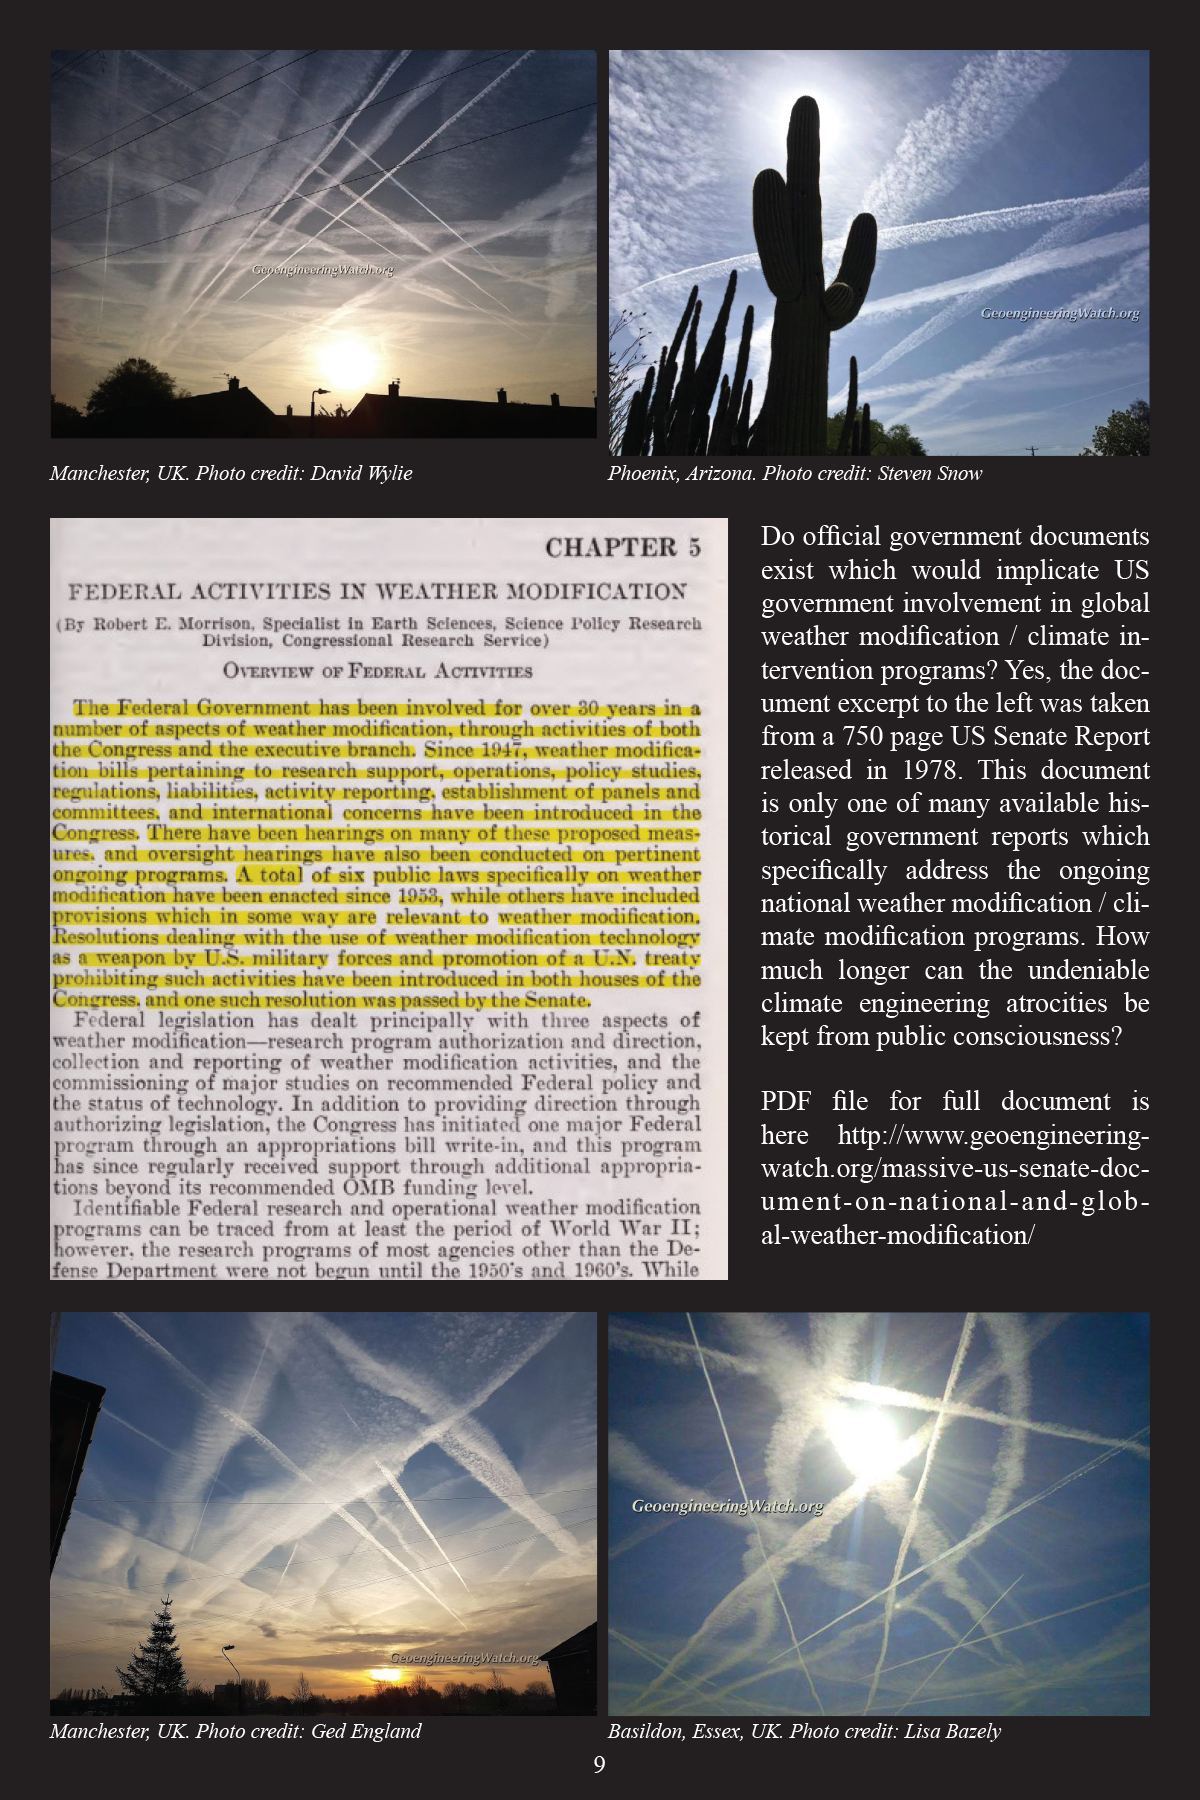 Climate Engineering Fact And Photo Summary - page 9